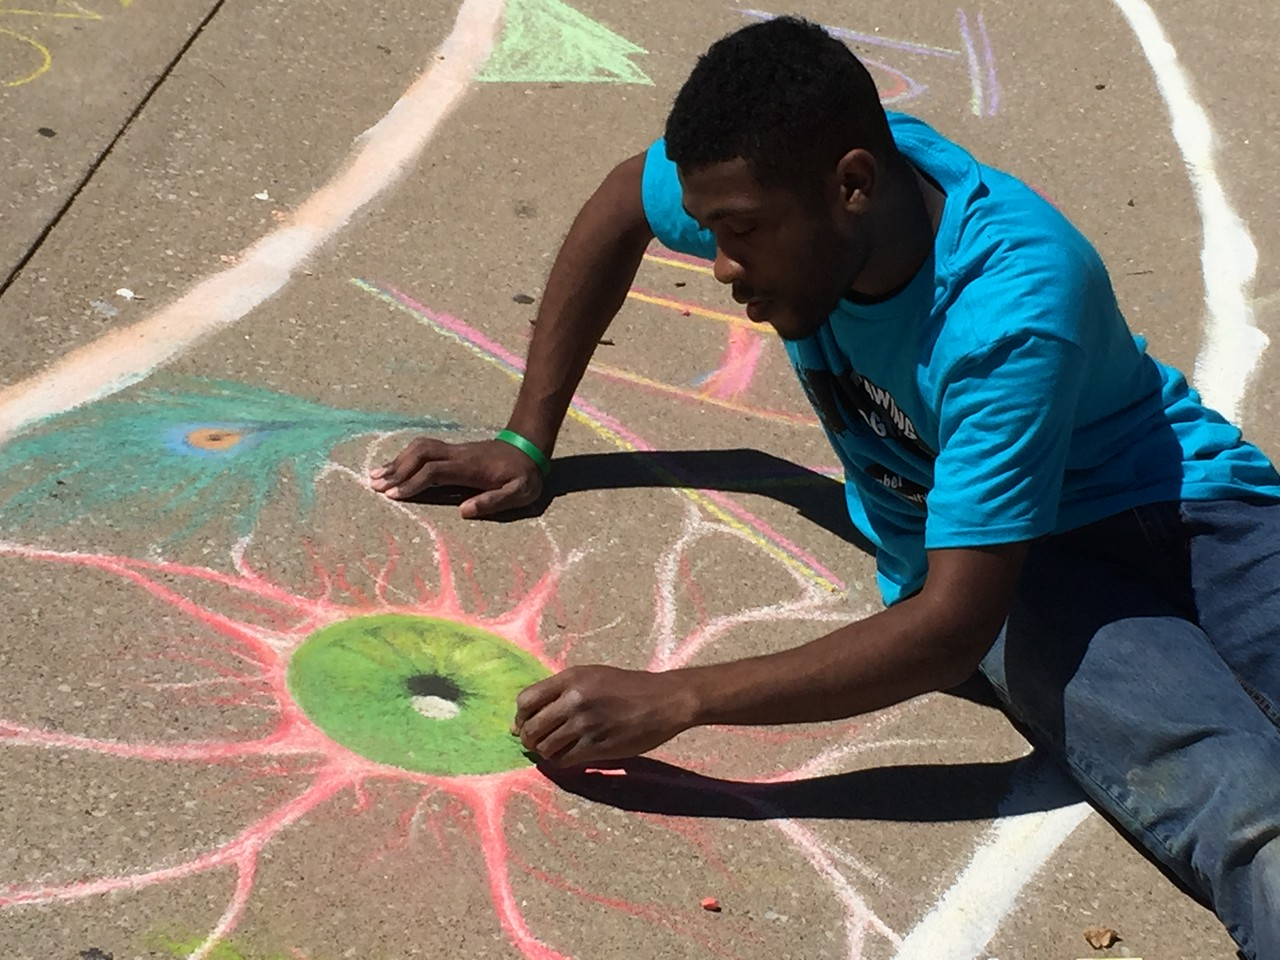 William drawing his vision Drawing FergUSon Together: A Vision of Peace; Sept. 18-19, 2015 Social Justice Summit and Community CHALK4PEACE Celebration   St. Louis Community College, Florissant Valley Ferguson, Missouri